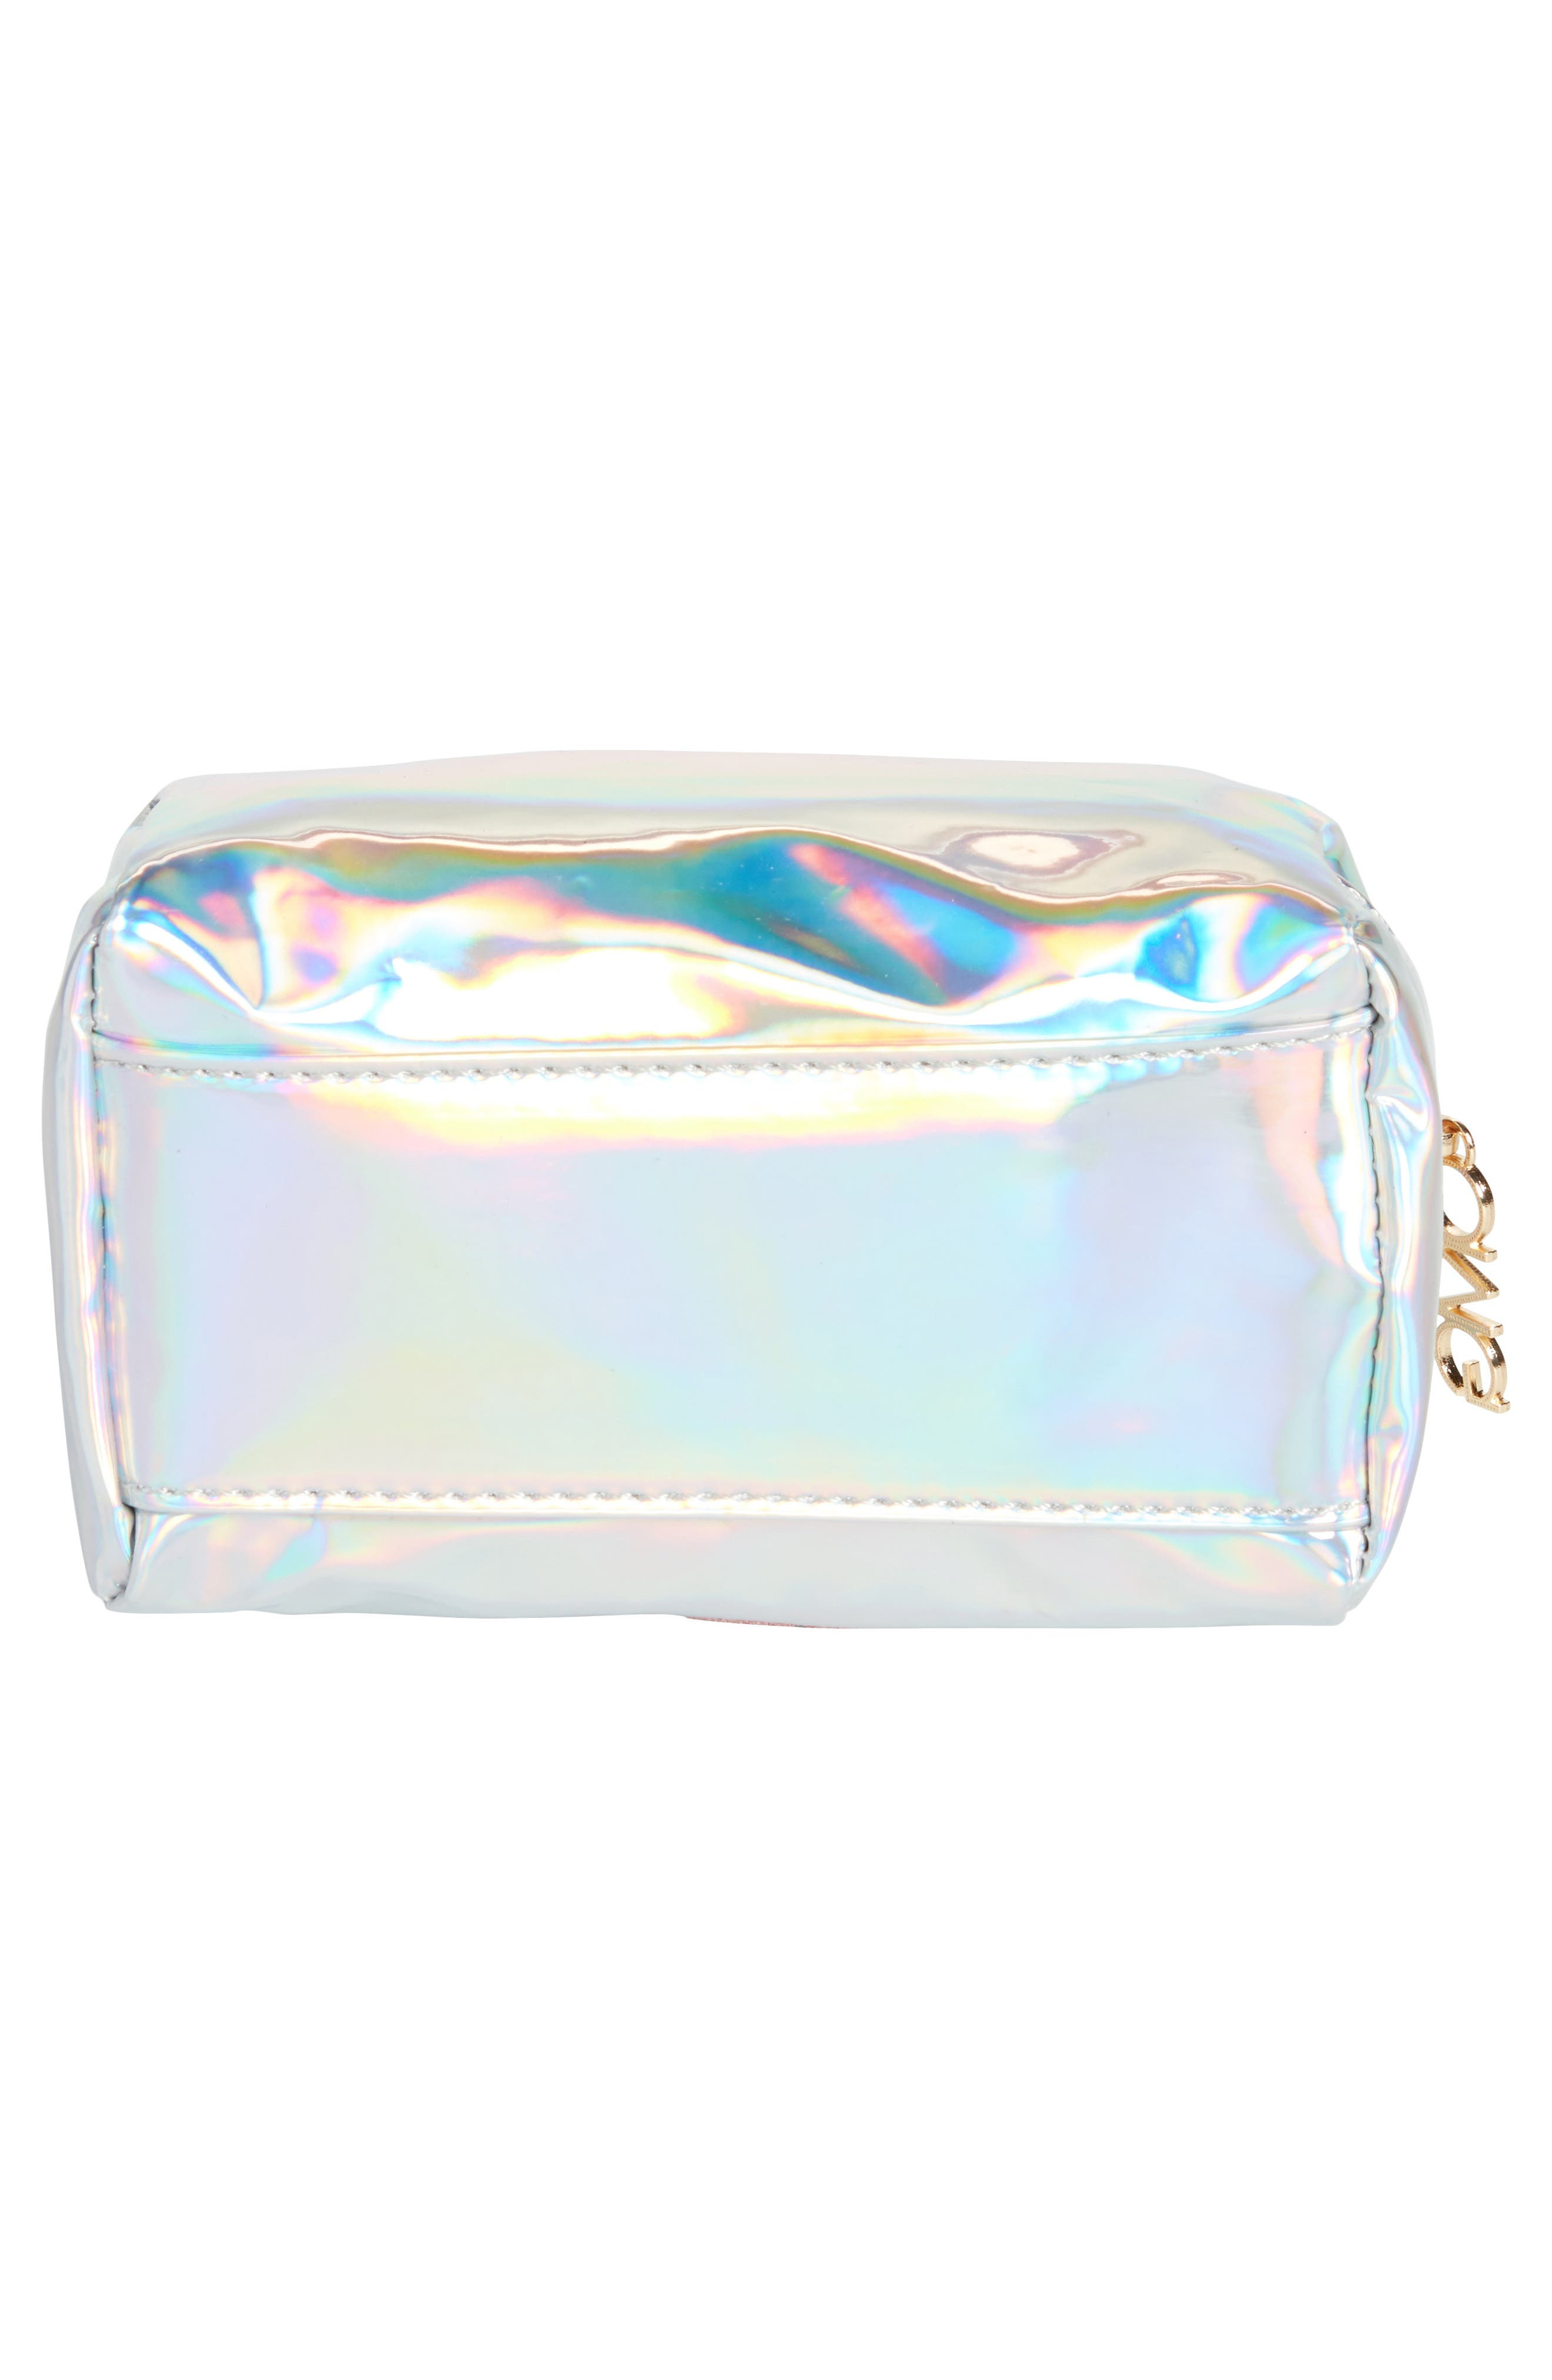 Glitter Eye Iridescent Cosmetics Bag,                             Alternate thumbnail 4, color,                             Silver